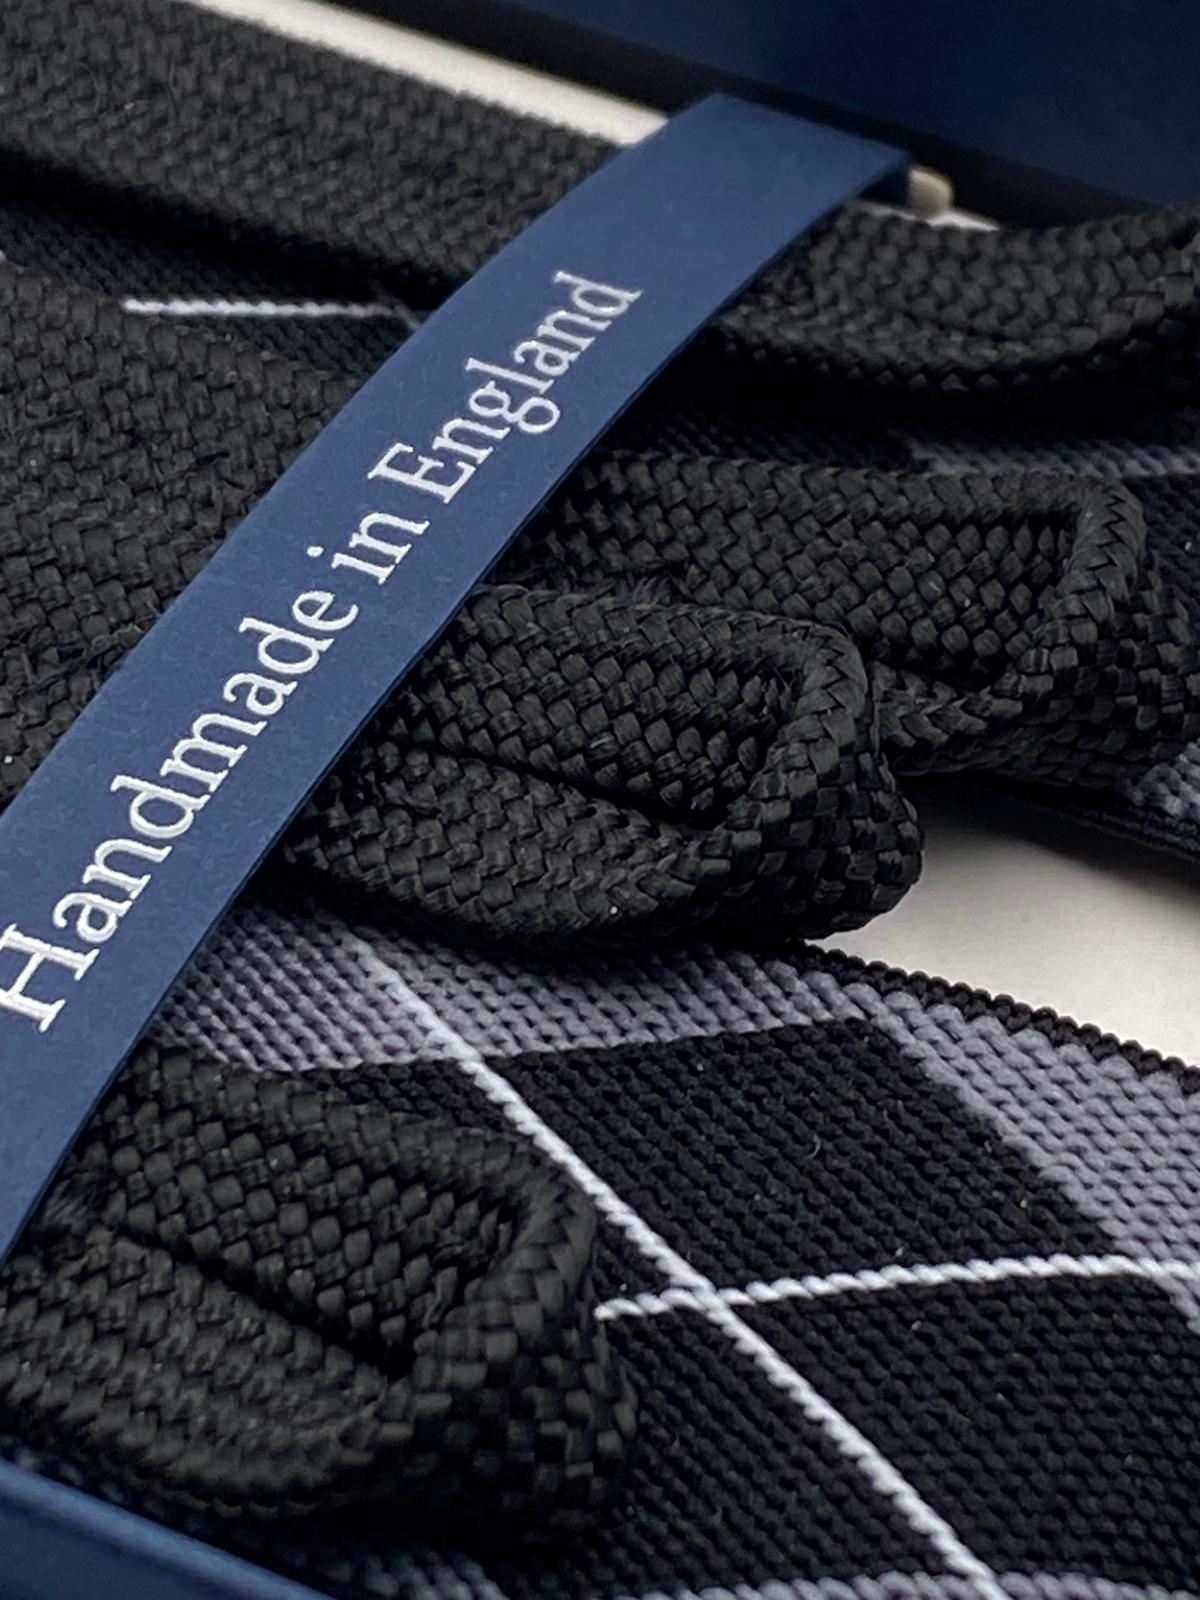 Albert Thurston for Cruciani & Bella Made in England Adjustable Sizing 35 mm elastic  braces Grey, Black and White tartan braces Braid ends Y-Shaped Nickel Fittings Size: L #4949